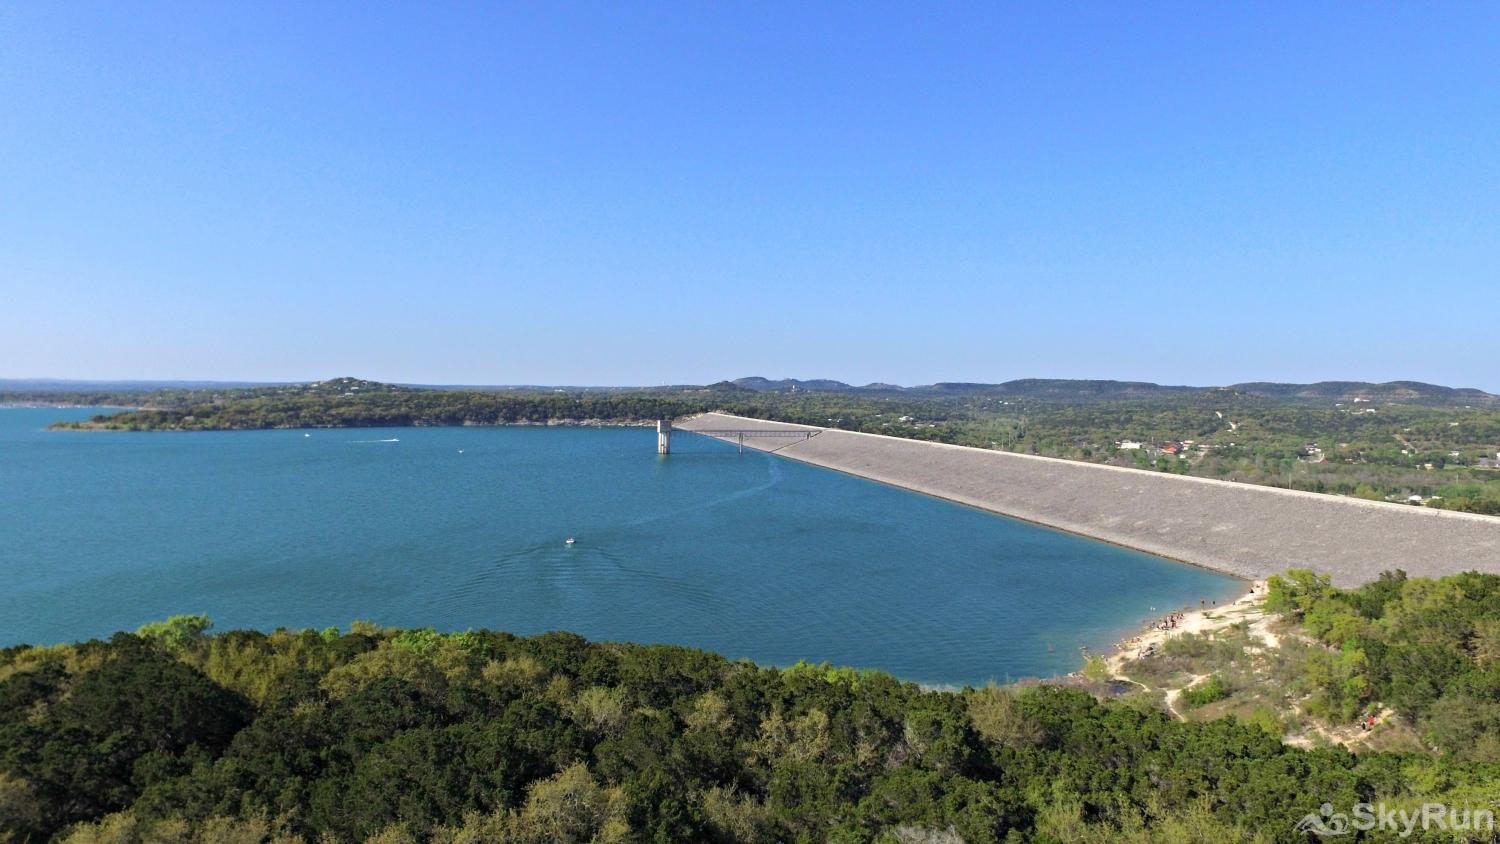 CASA DEL LAGO Canyon Lake Dam, 10 miles away